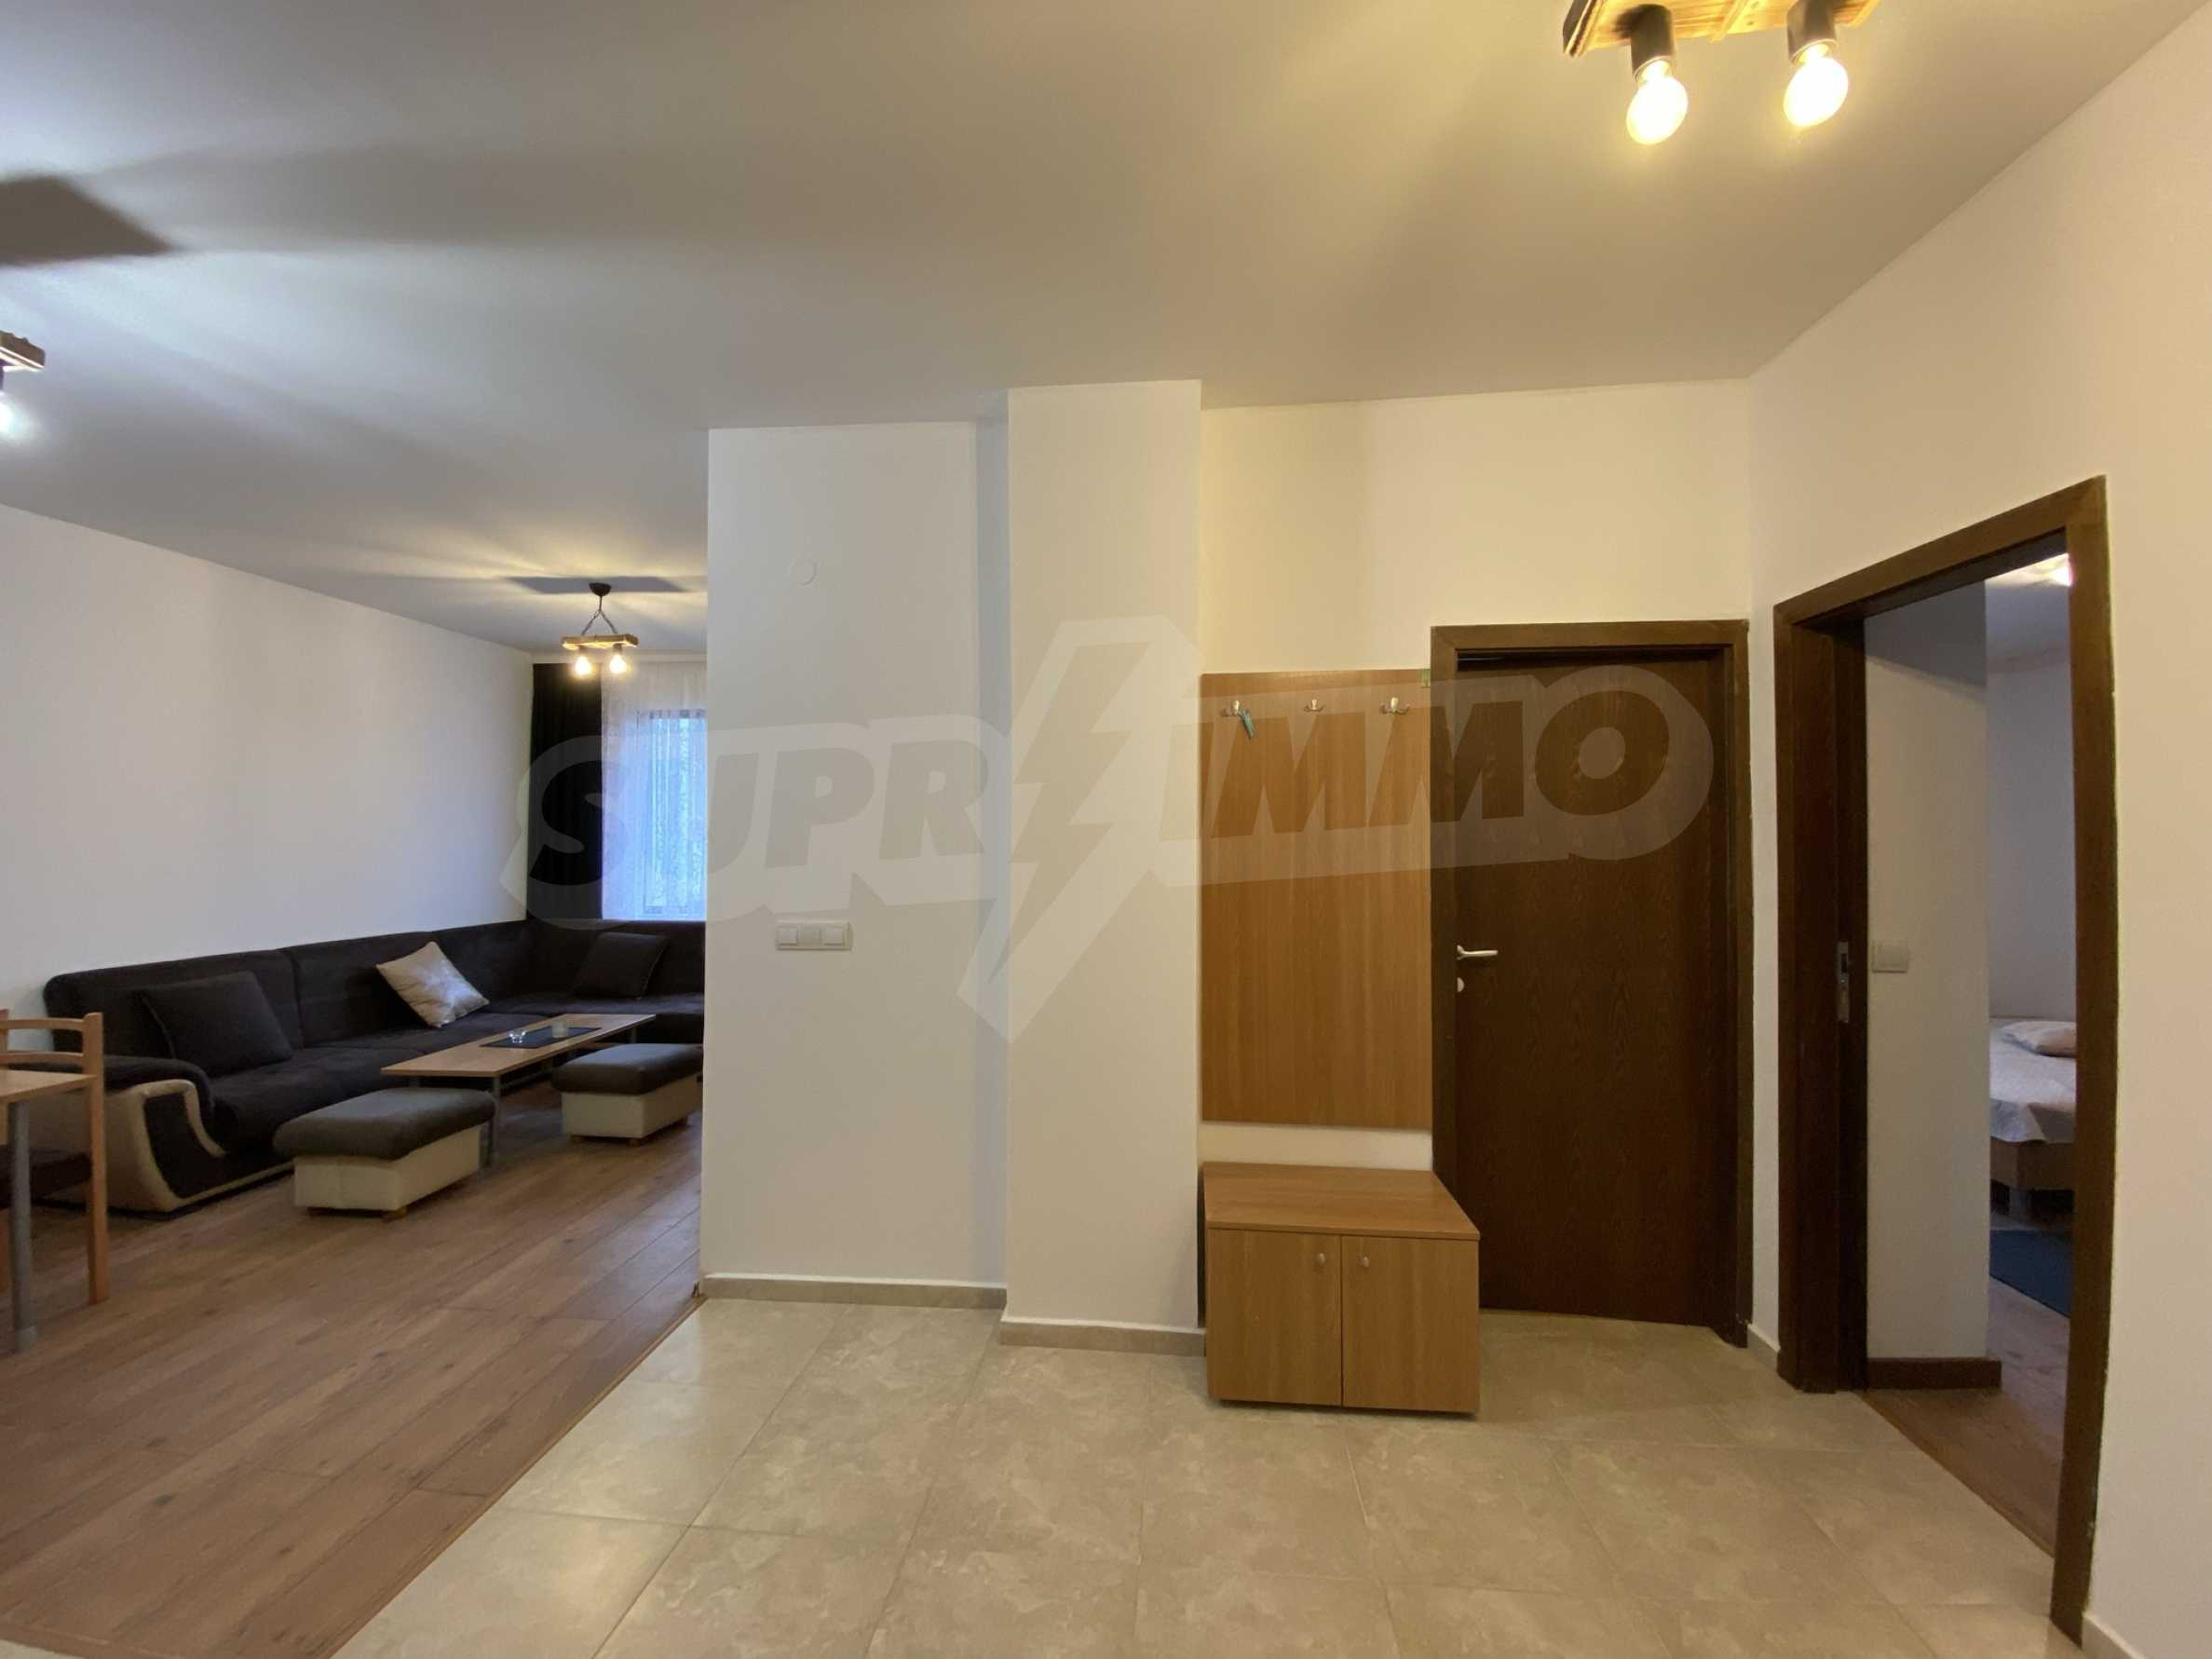 Two-bedroom apartment in a well-maintained building in Bansko 8